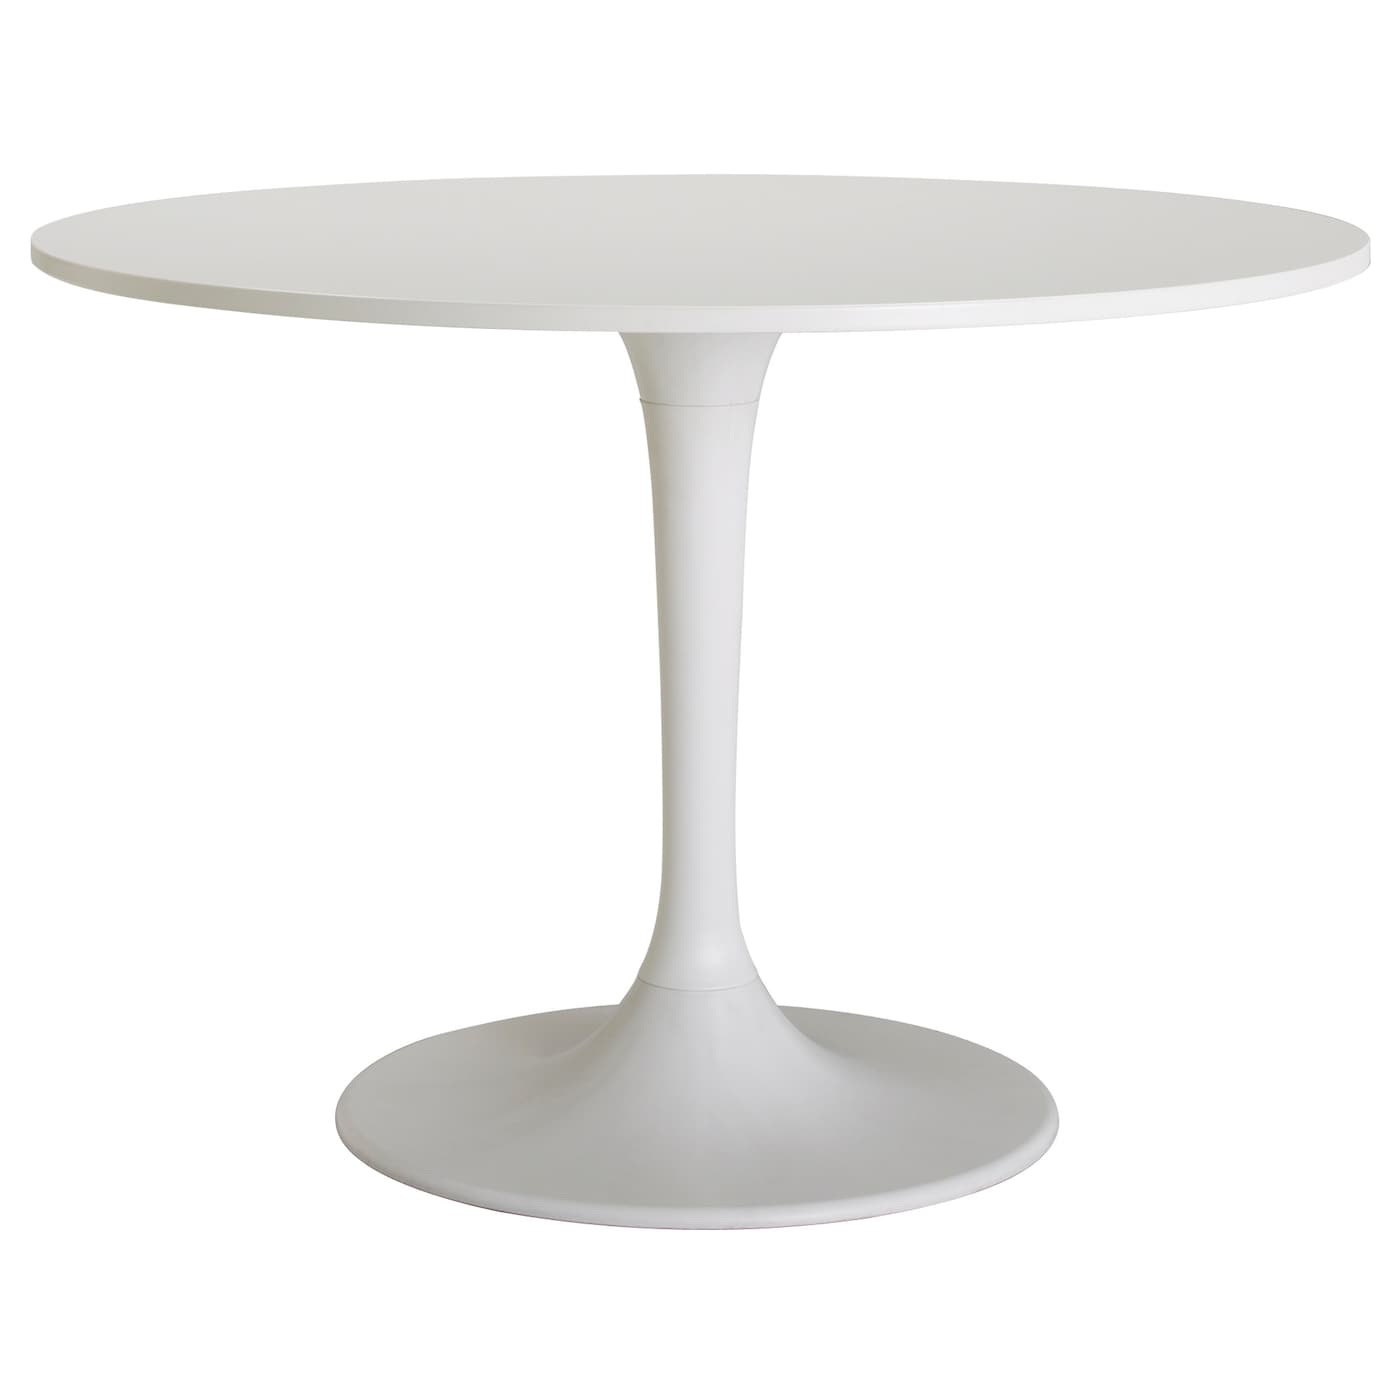 White Dining Table Ikea: DOCKSTA Table White 105 Cm